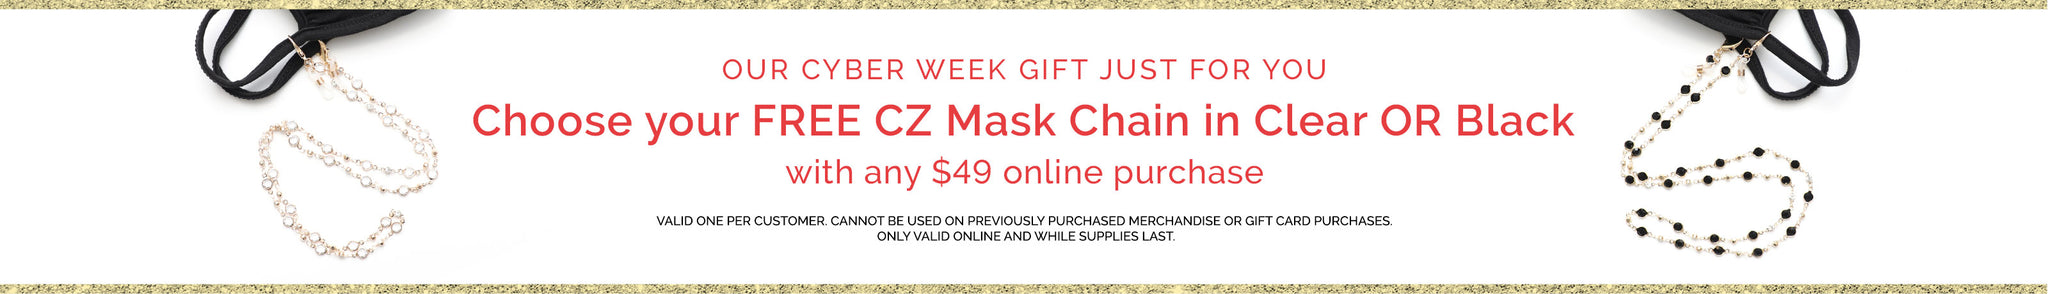 Our Cyber week Gift just for you. Choose your Free CZ Mask Chain in Clear or Black with any $49 online purchase. Valid one per customer. Cannot be used on previously purchased merchandise or gift card purchases. Only valid online and while supplies last.